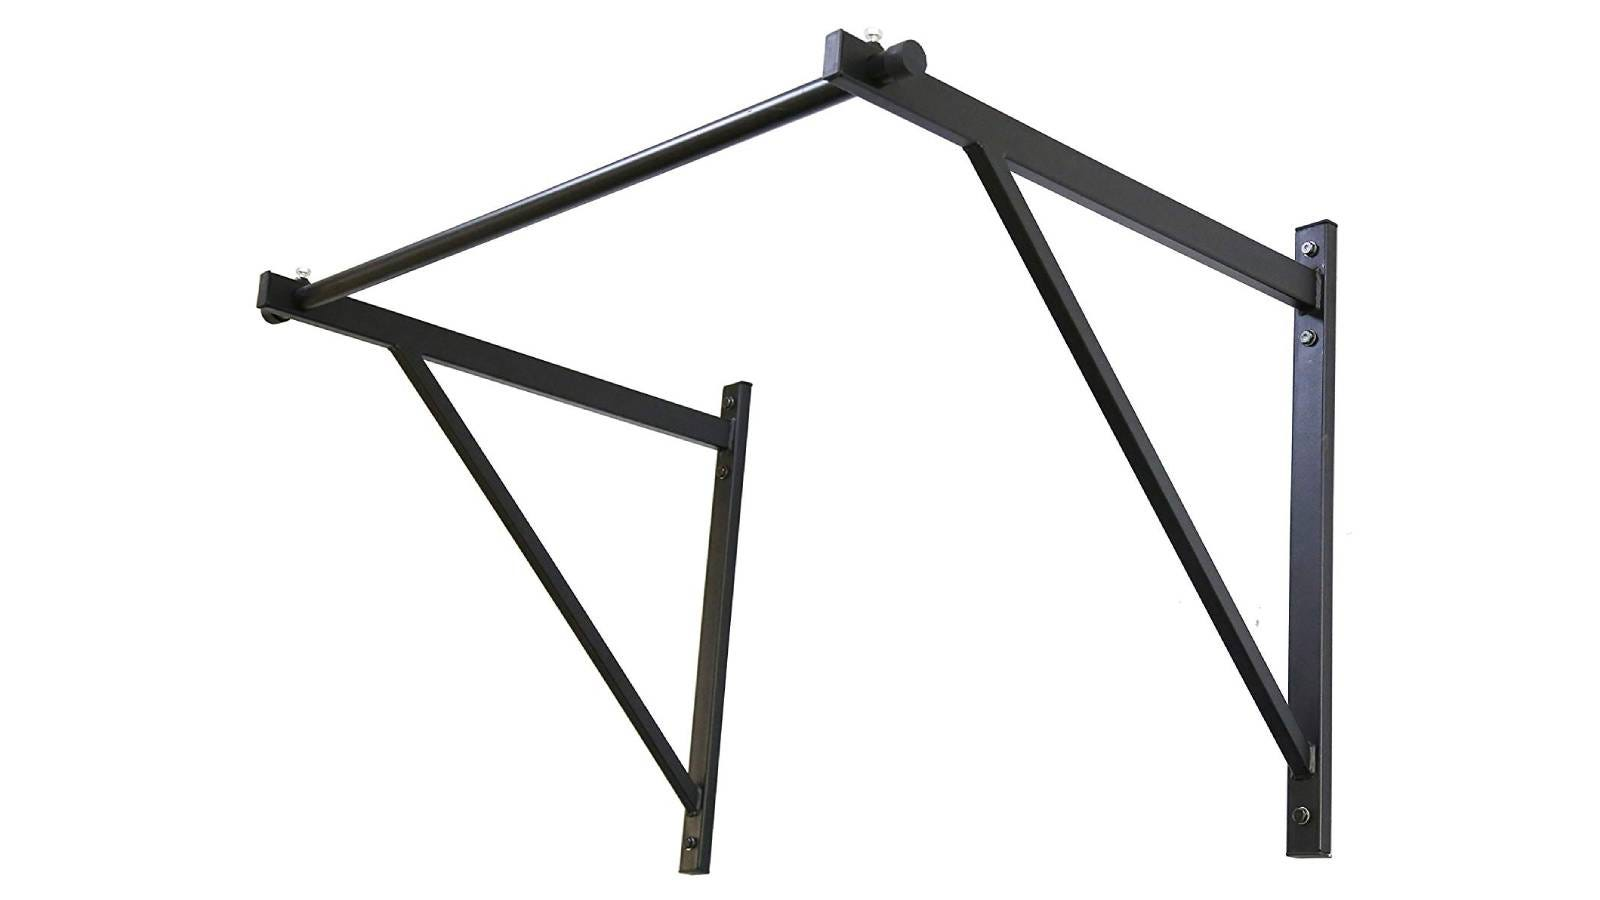 ECOTRIC 50'' Heavy Duty Wall Mounted Pull Up Chin Up Bar